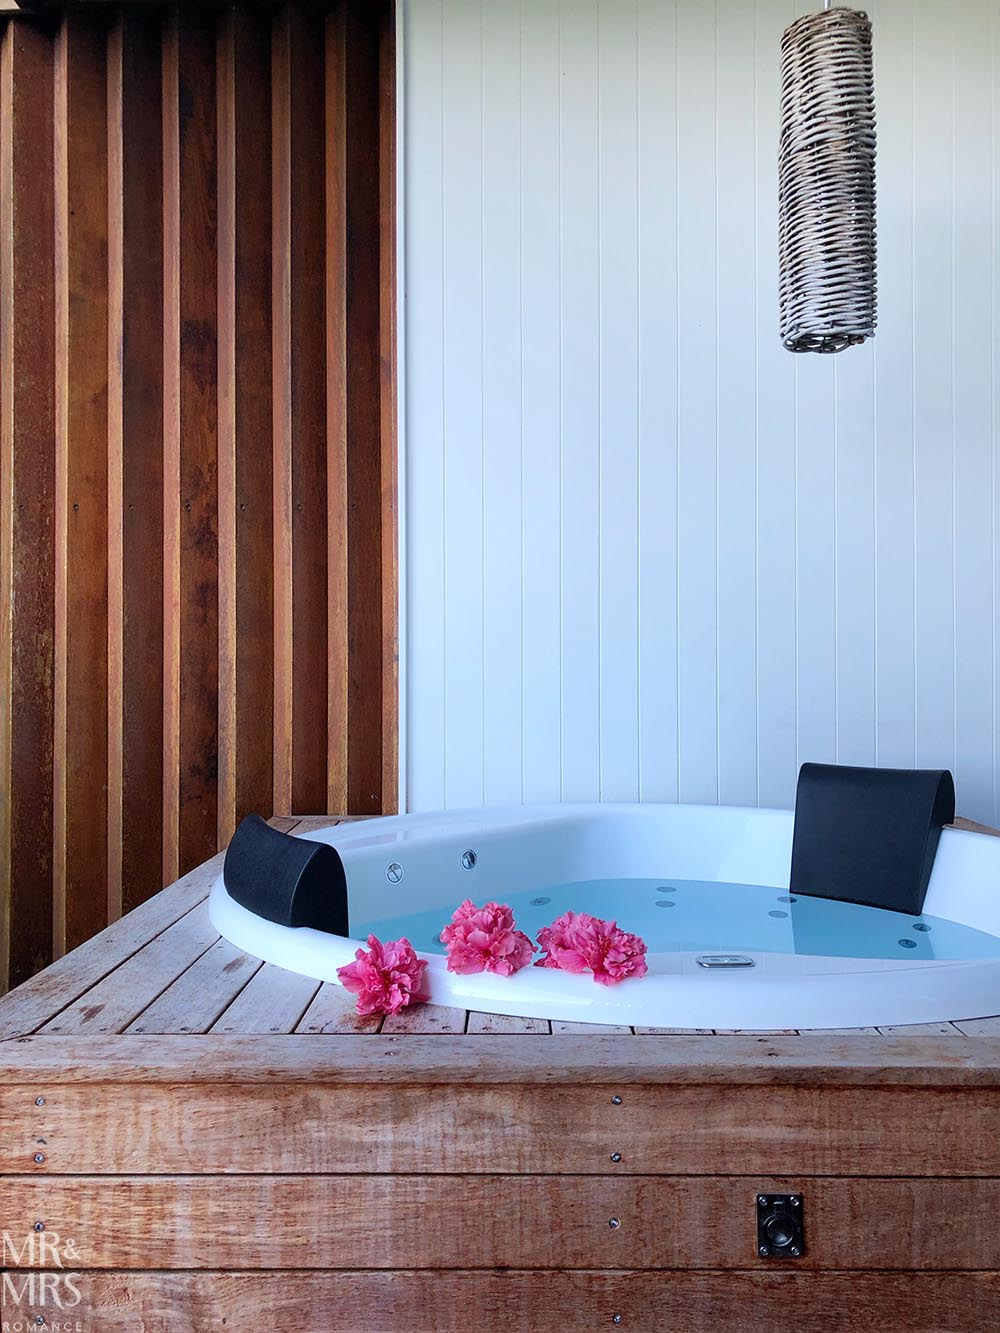 Bannisters by the Sea Mollymook spa review